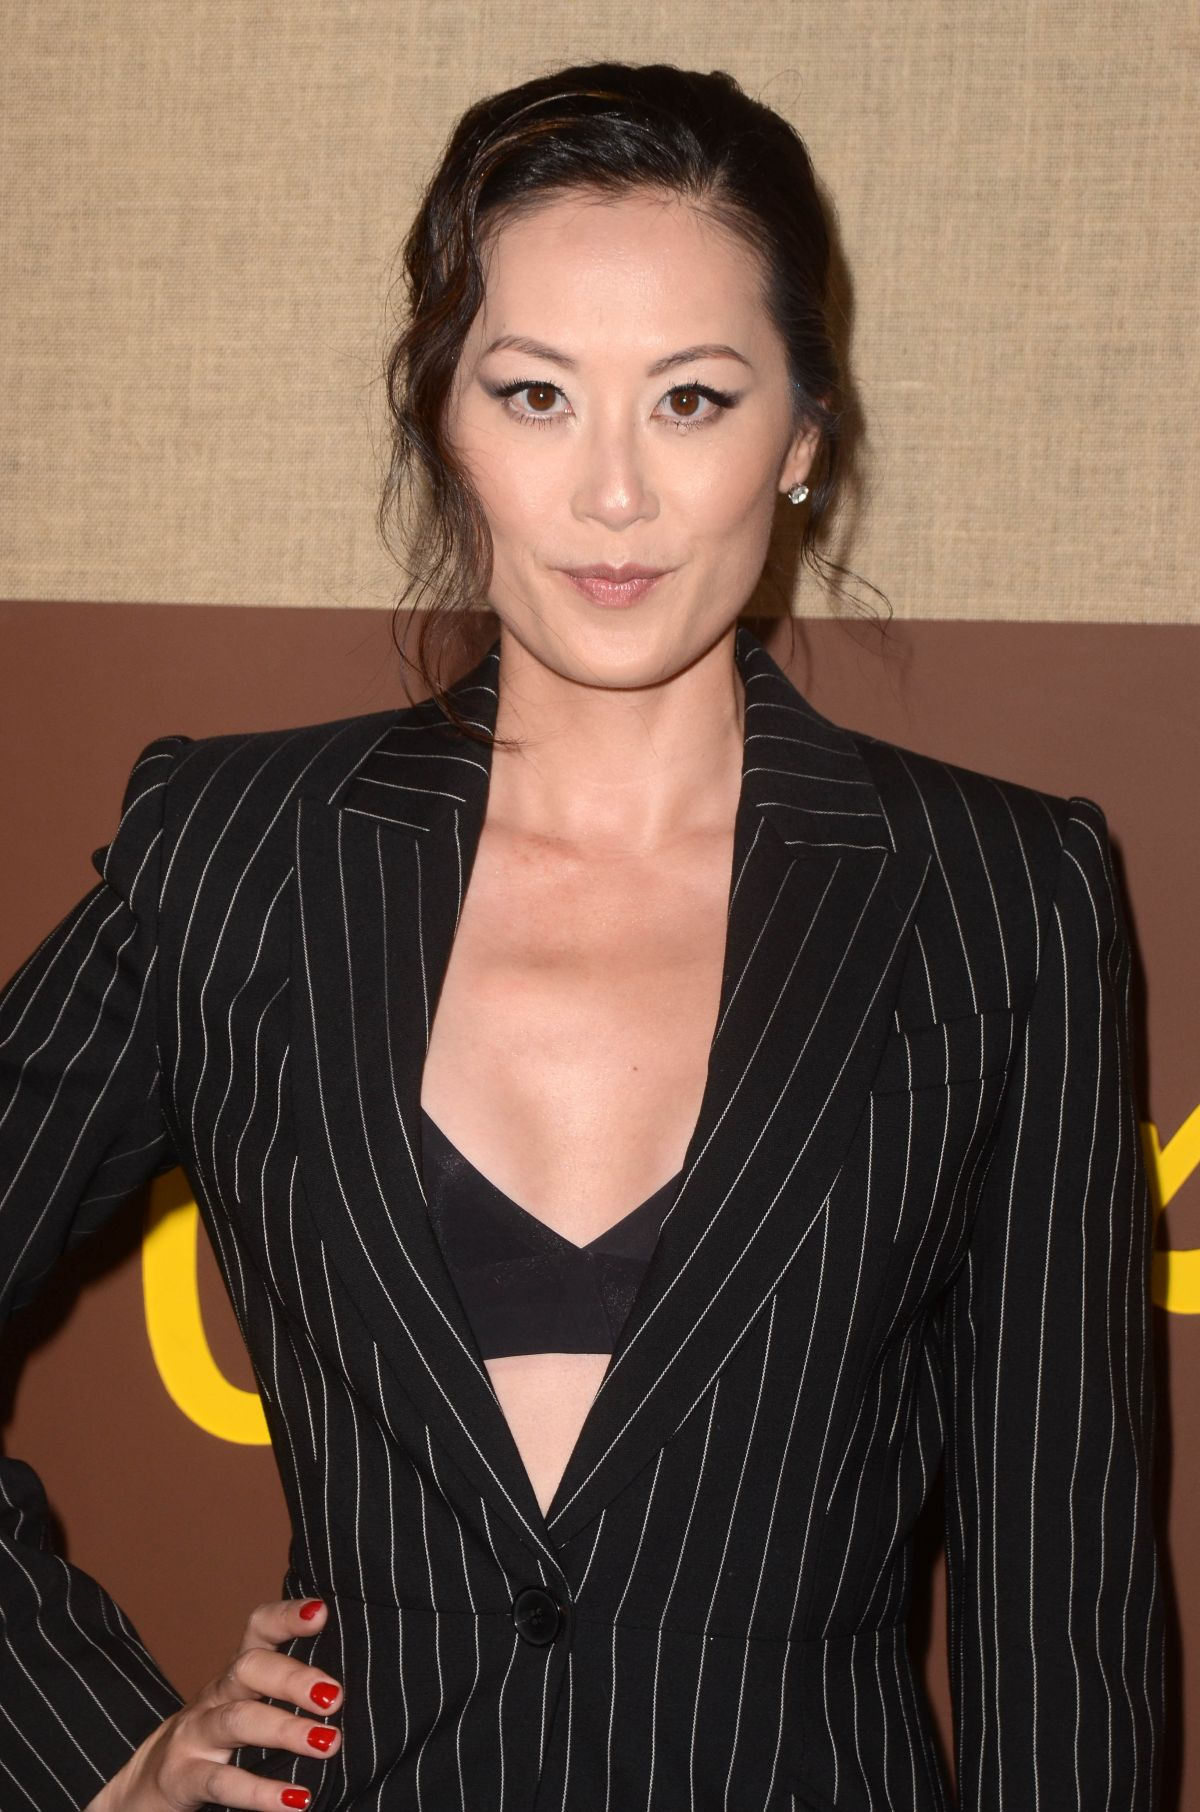 Olivia Cheng naked (17 foto and video), Tits, Fappening, Instagram, cleavage 2006